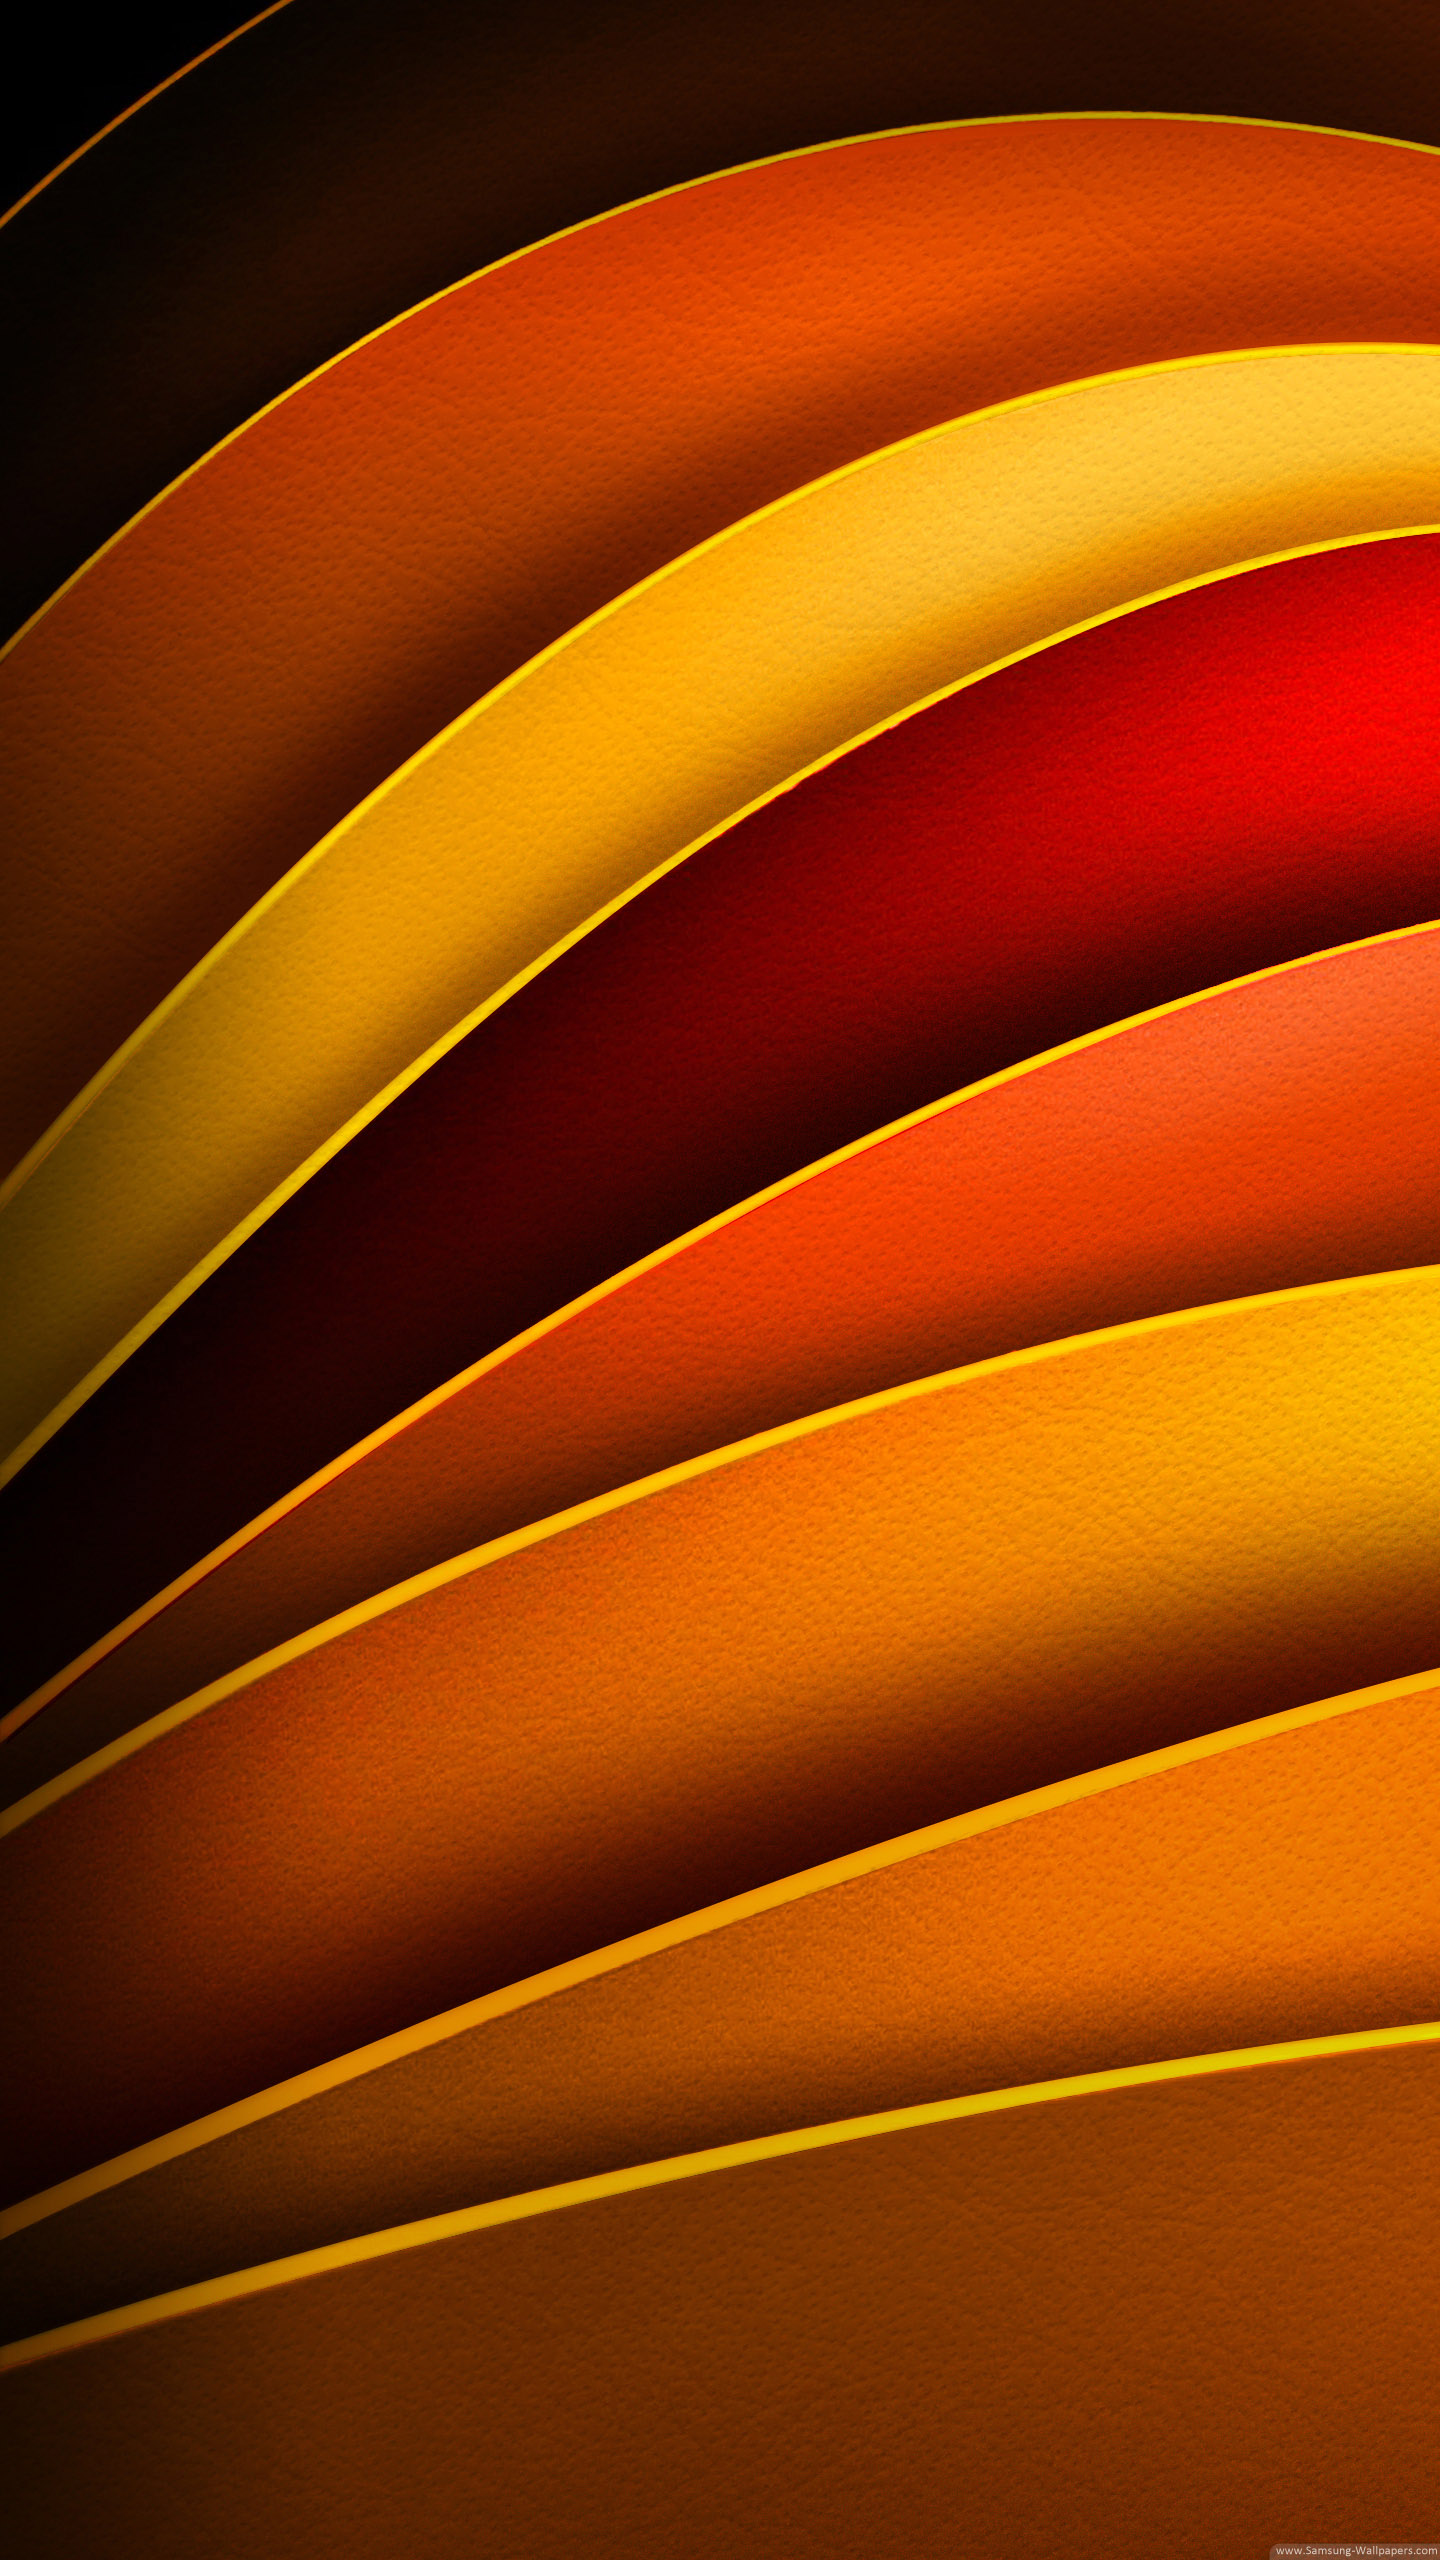 Moto x wallpapers hd | Moto X Pure Wallpapers (48+ images)  2019-04-16